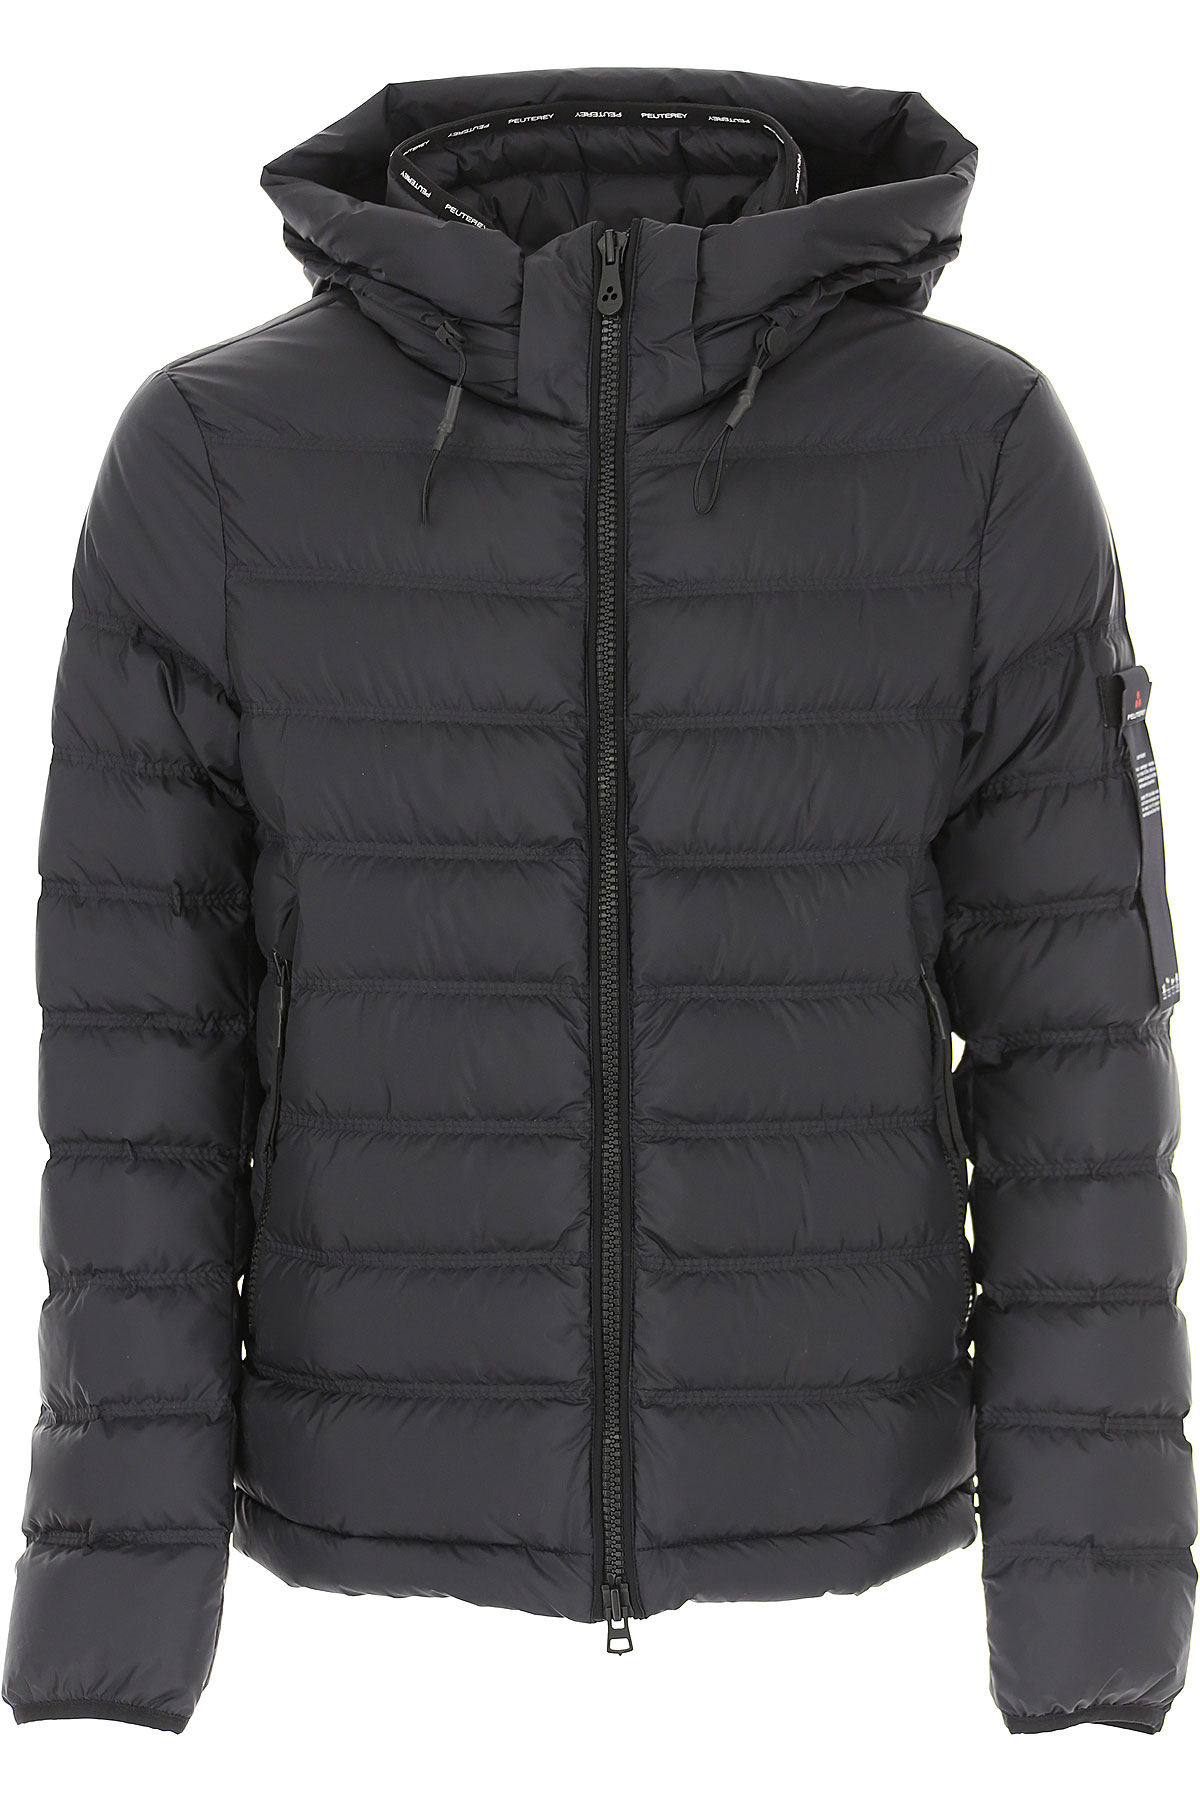 Peuterey Down Jacket for Men, Puffer Ski Jacket On Sale, Blue Ink, polyester, 2019, L M S XL XXL